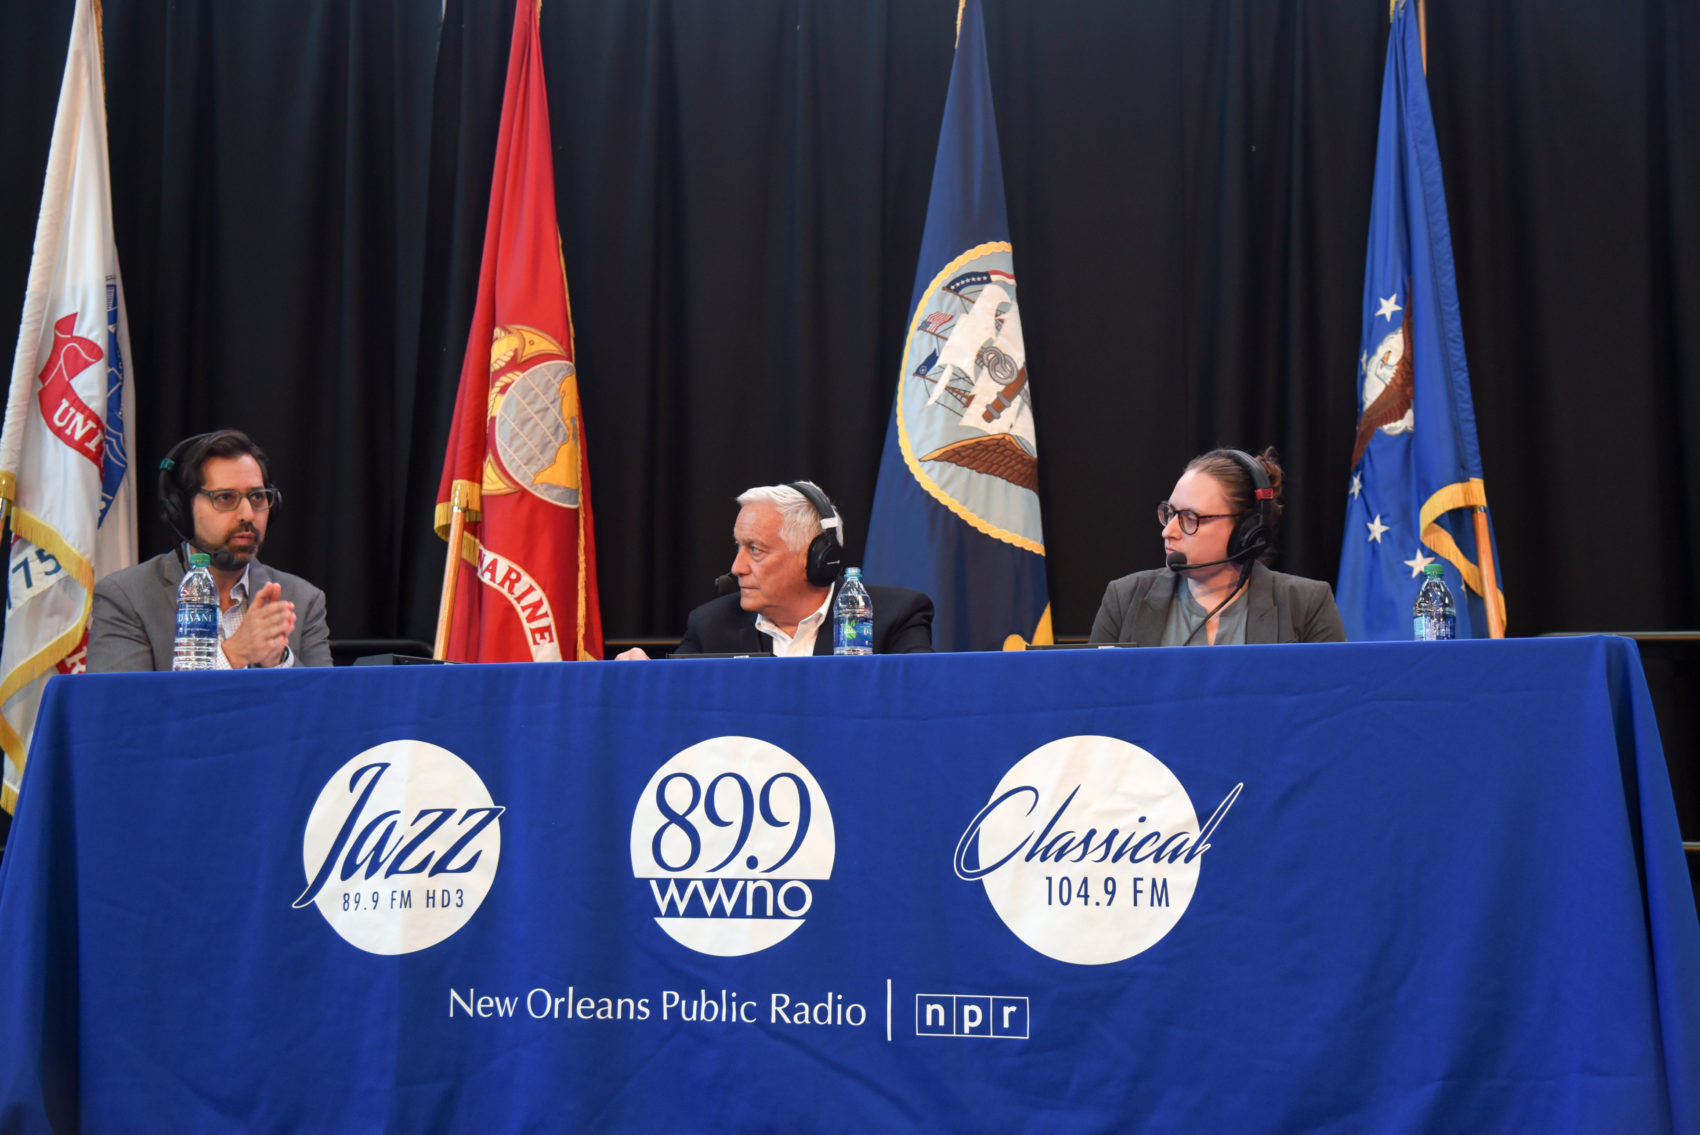 Left to right: David Folkenflik, Walter Isaacson and Gemma Birnbaum. (Tracie Morris Schaefer for WWNO)